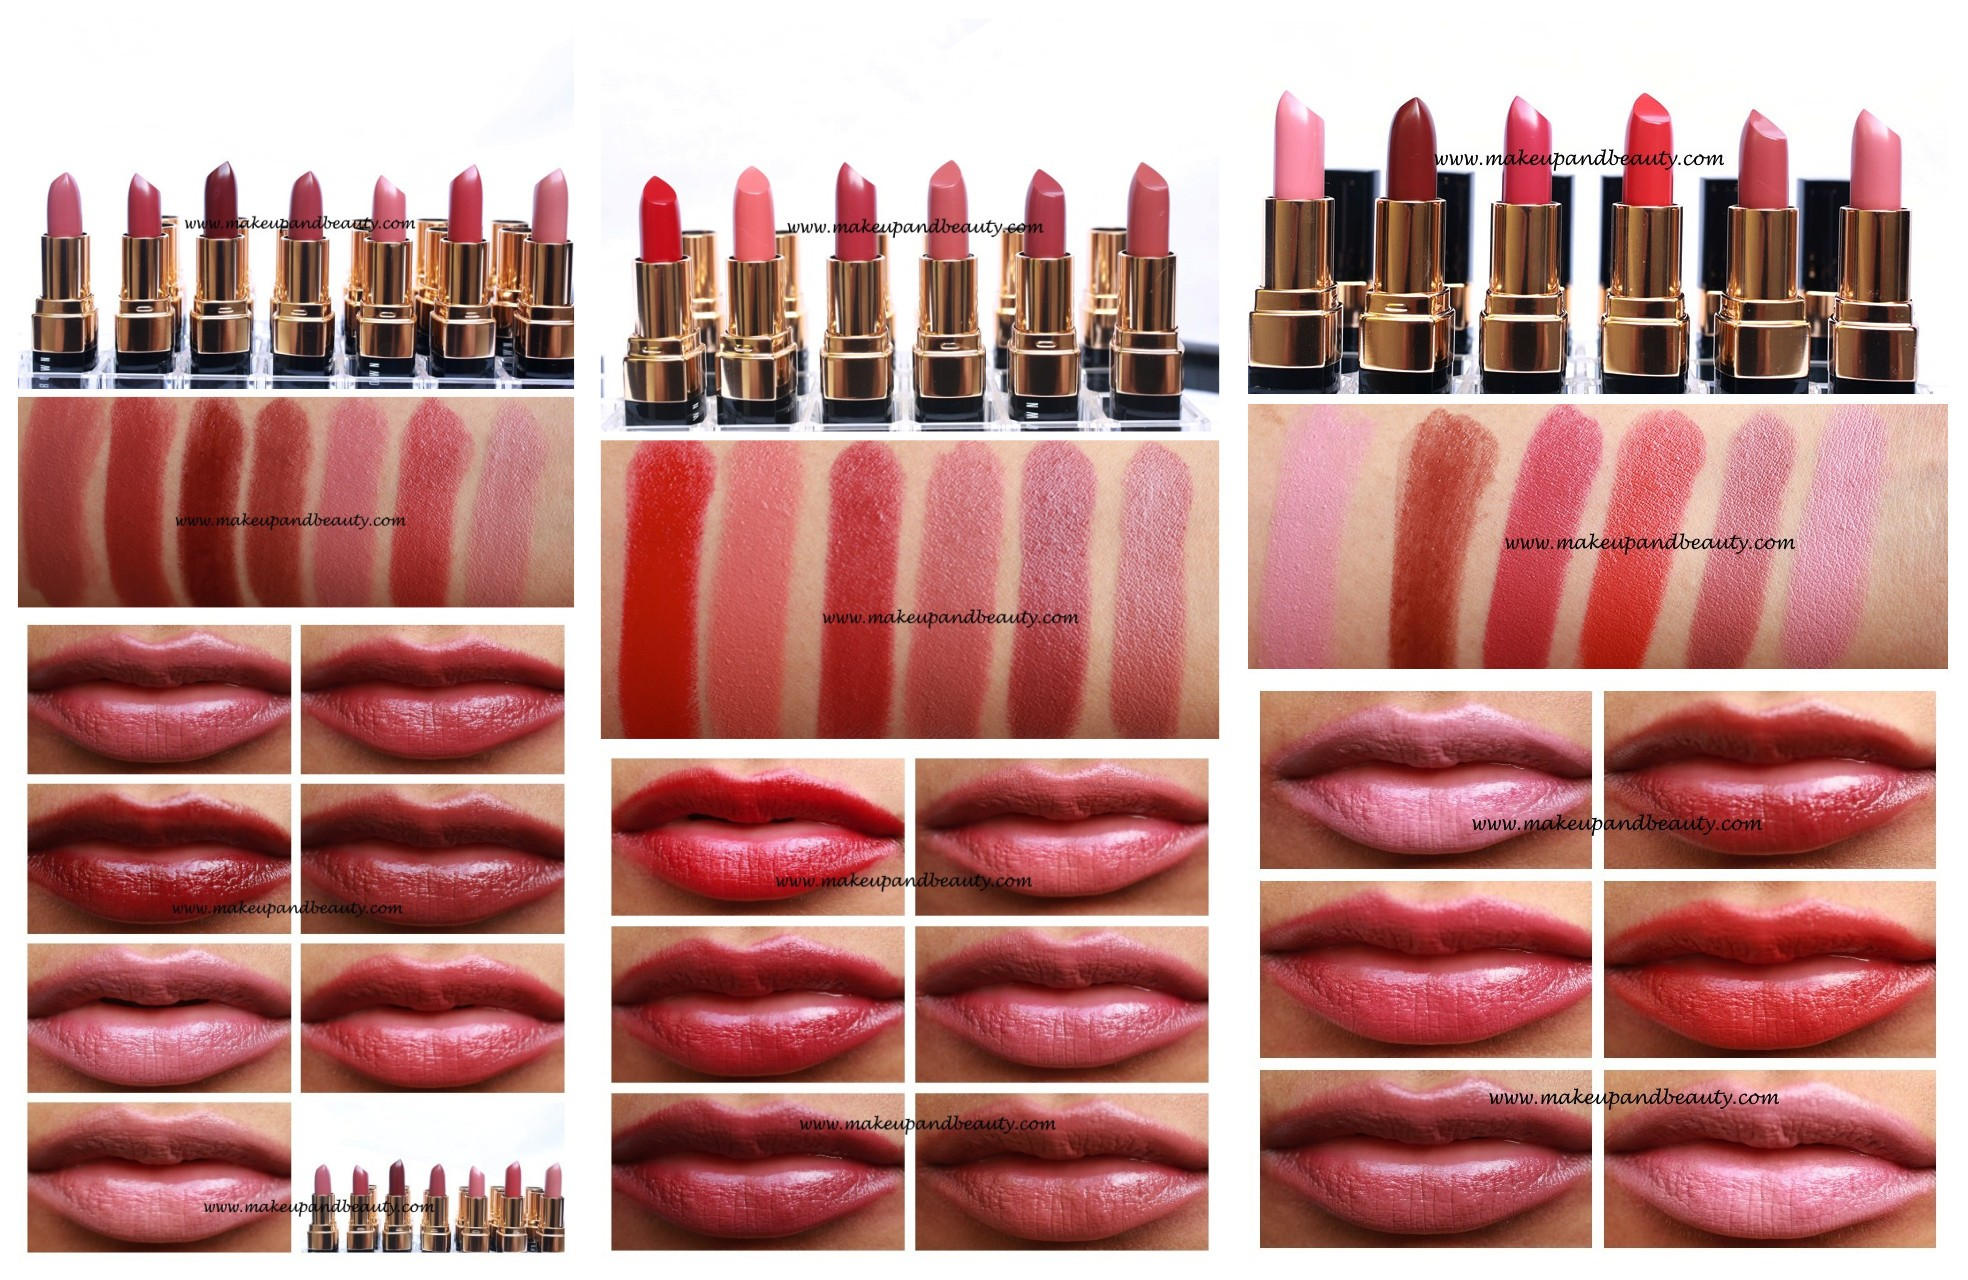 Bobbi Brown Roseberry Lipstick hd photo